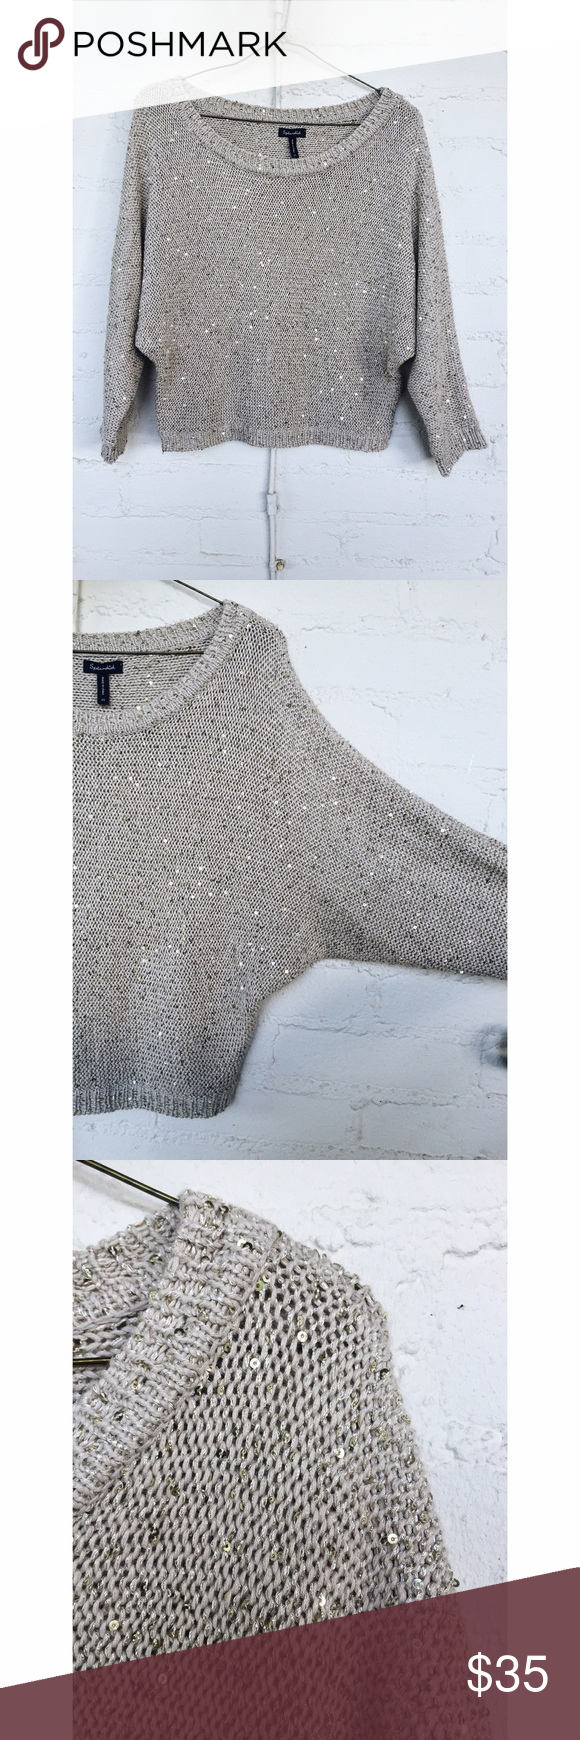 Splendid Sequin Sweater Splendid cream knit sweater with sequins, size XS. Wide at the top and baggy fit. You'd think the sequins would be itchy, but it's very comfortable!! In great condition.  🌸 Offers welcome! 🌸 Splendid Sweaters Crew & Scoop Necks